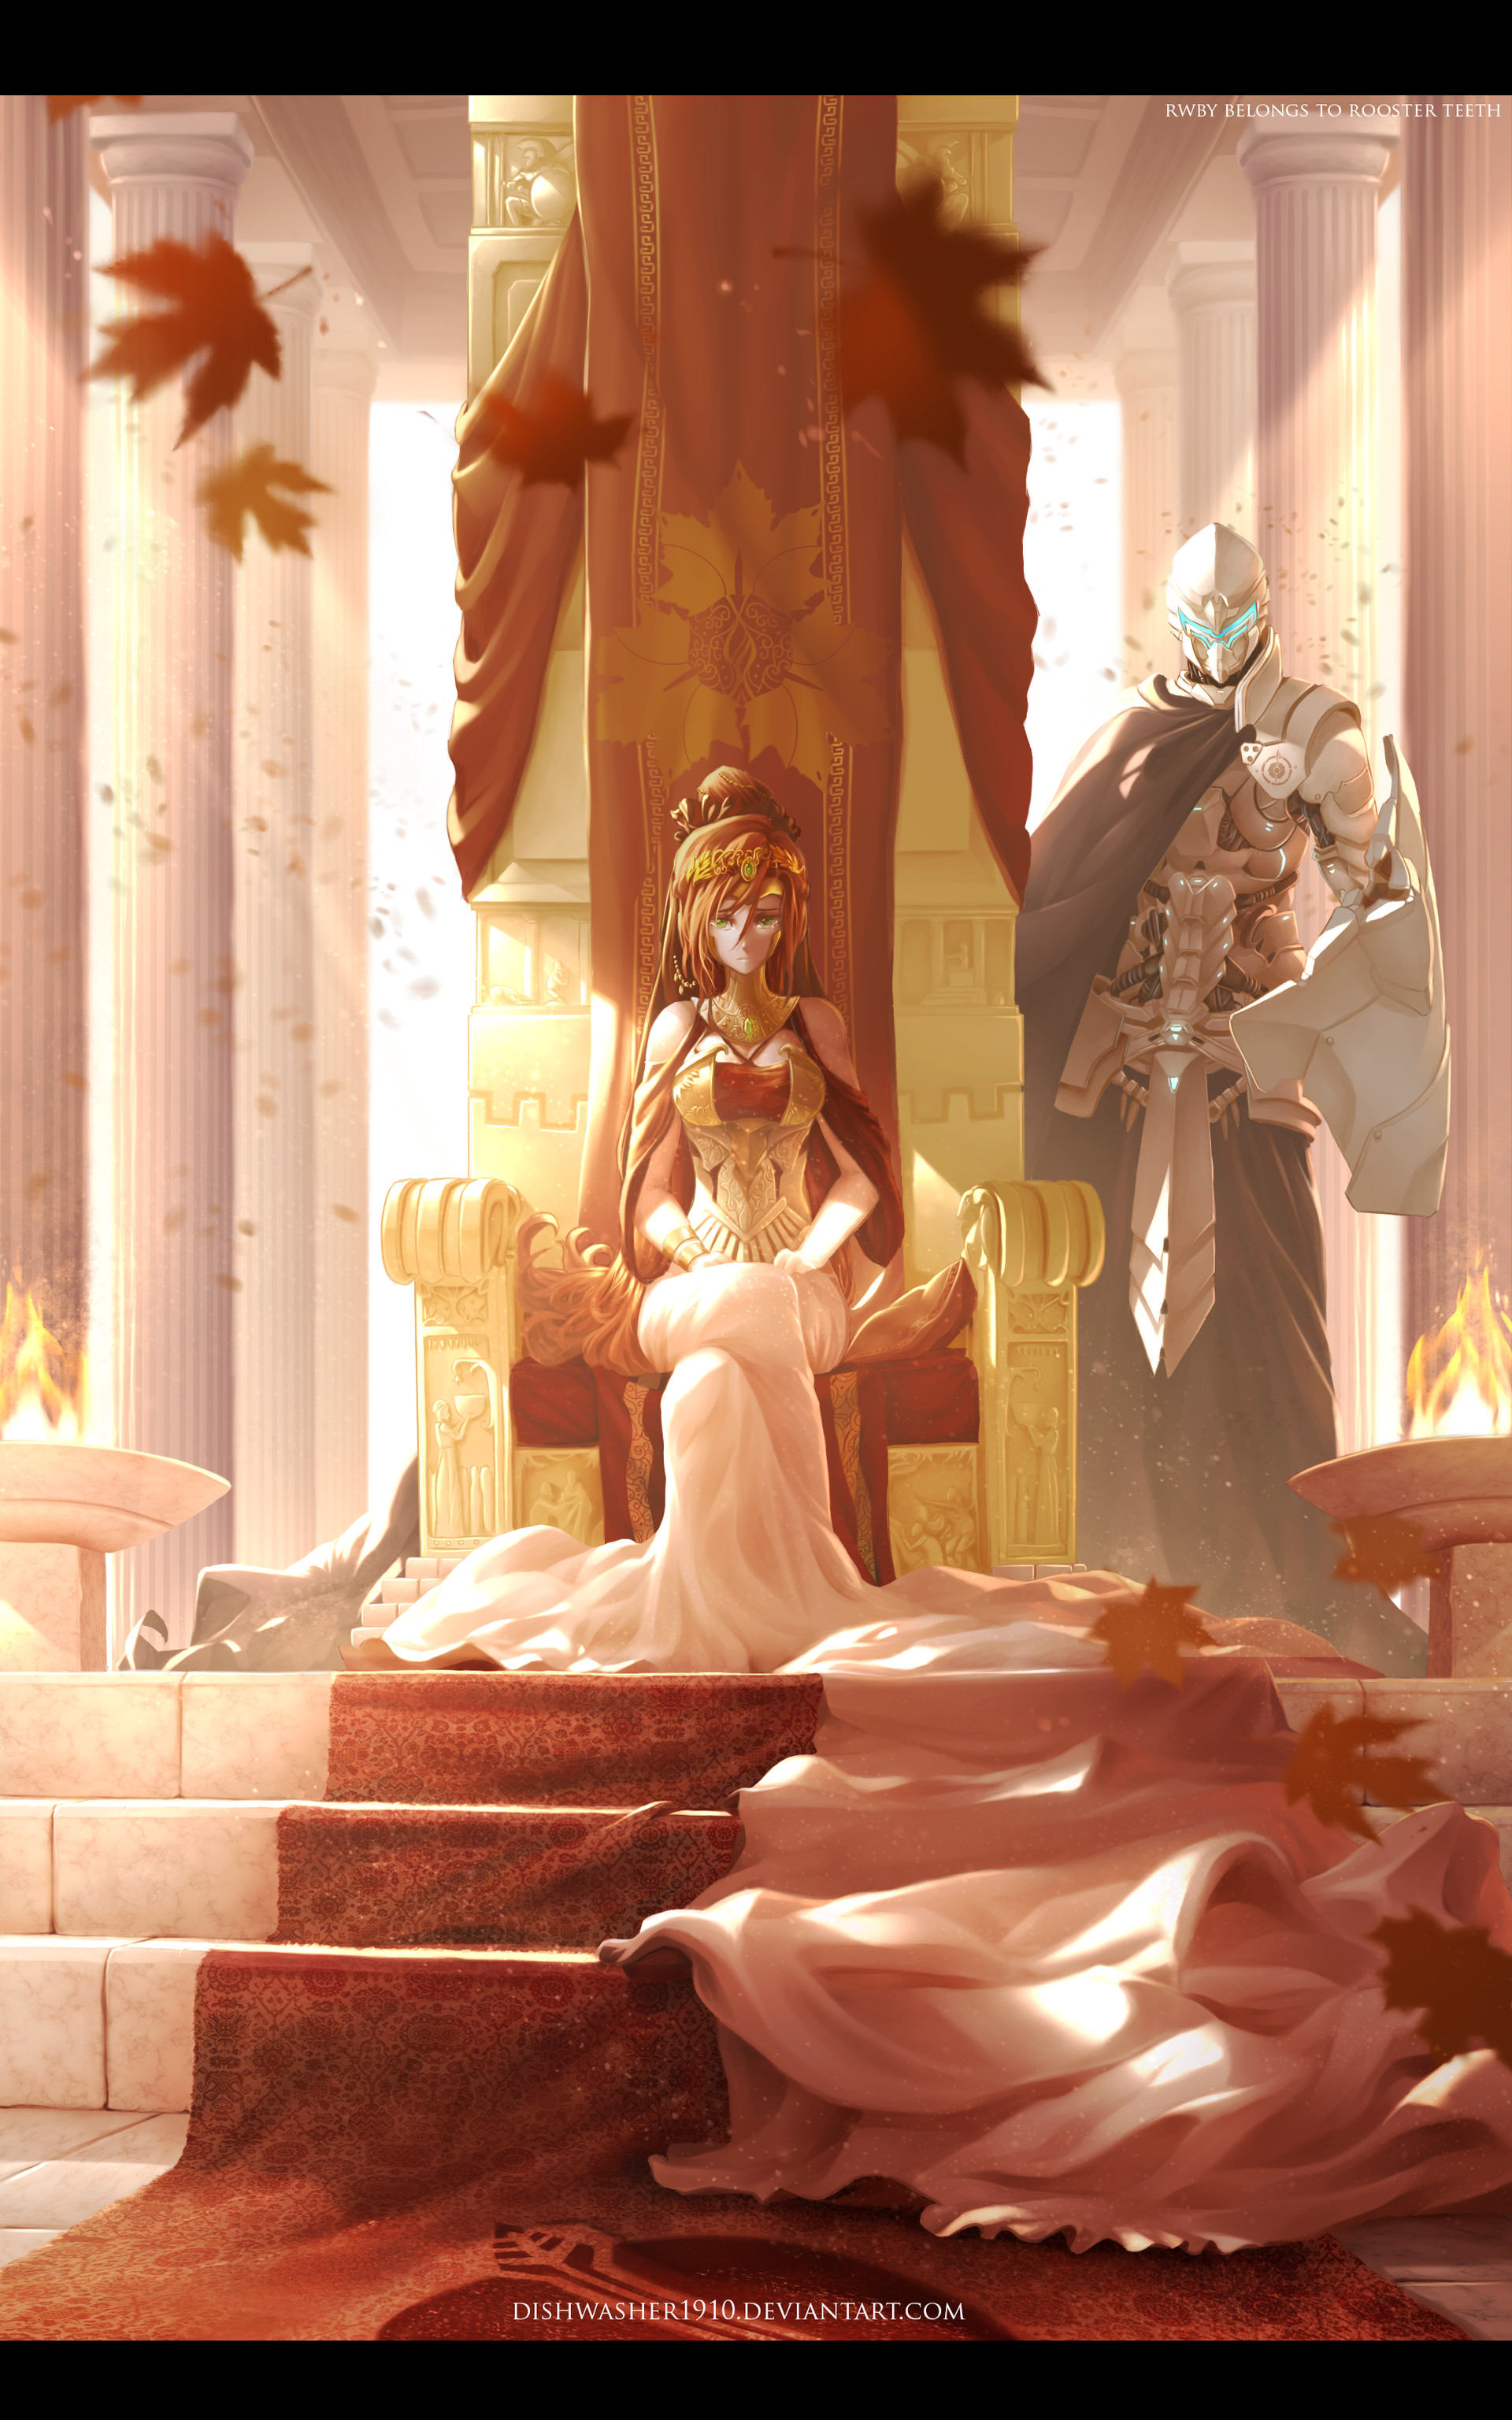 Bach do rwby goddess by dishwasher1910 d9p11hl